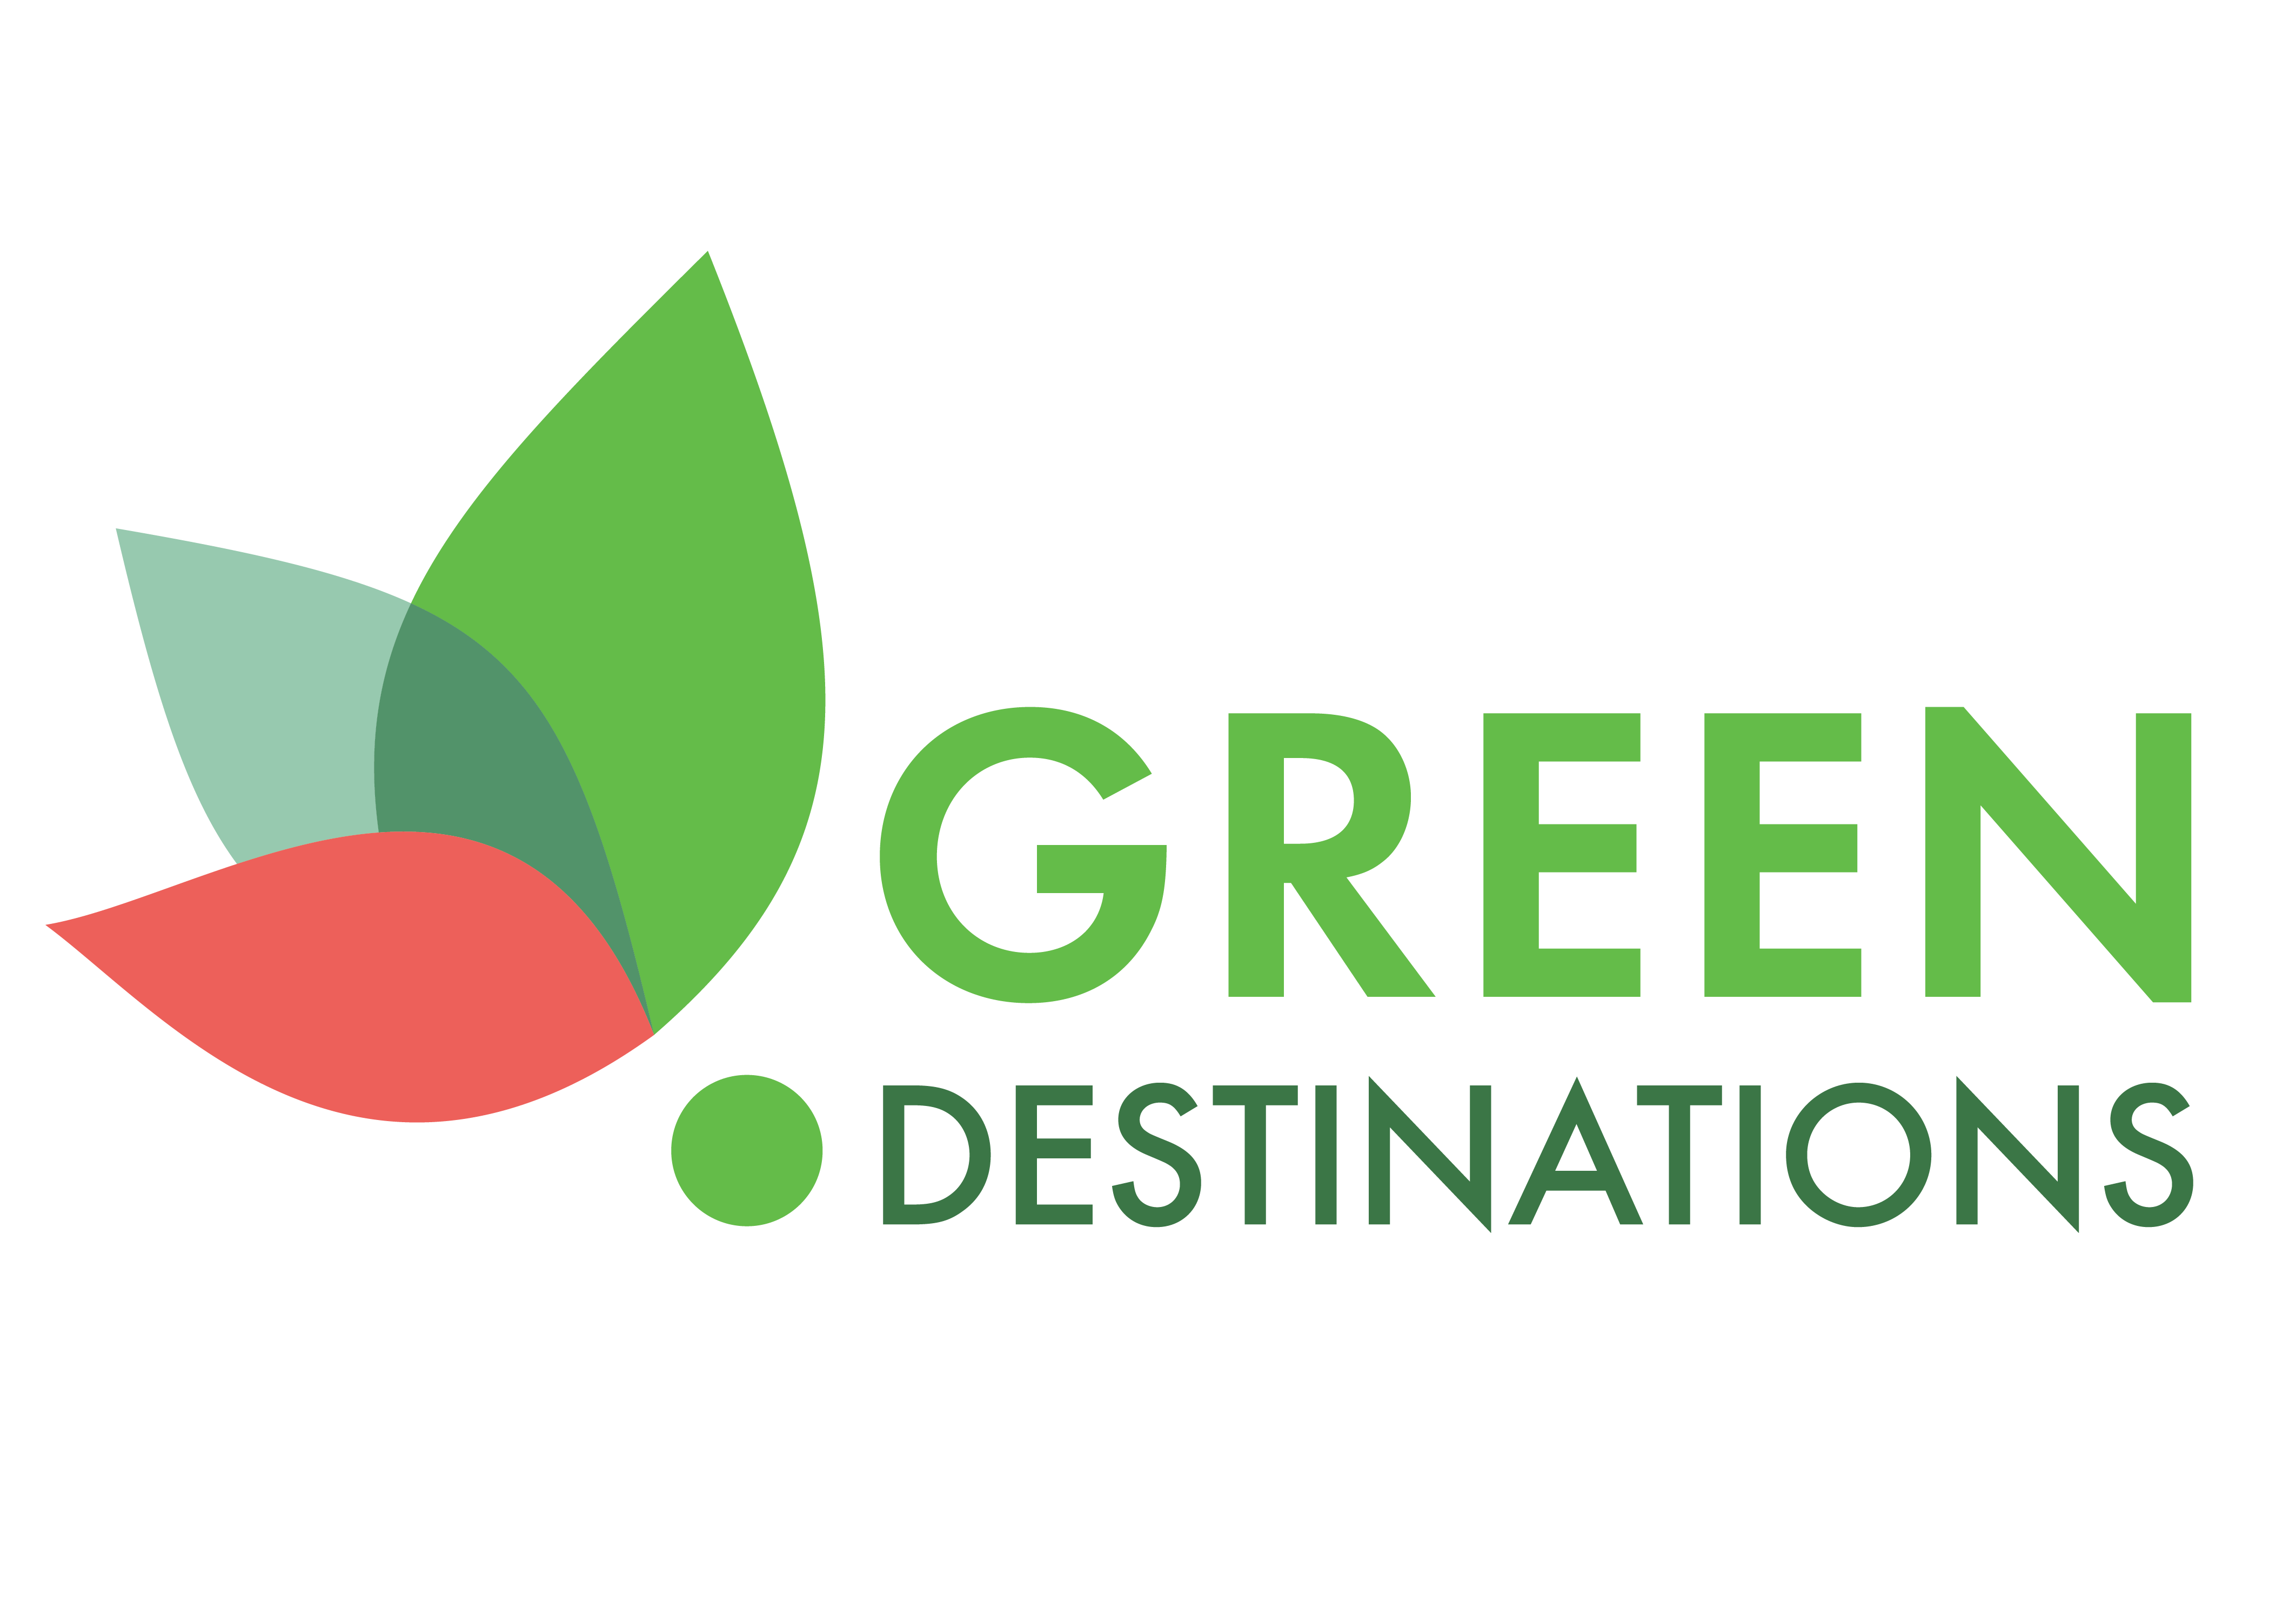 GREEN DESTINATIONS LAUNCHED